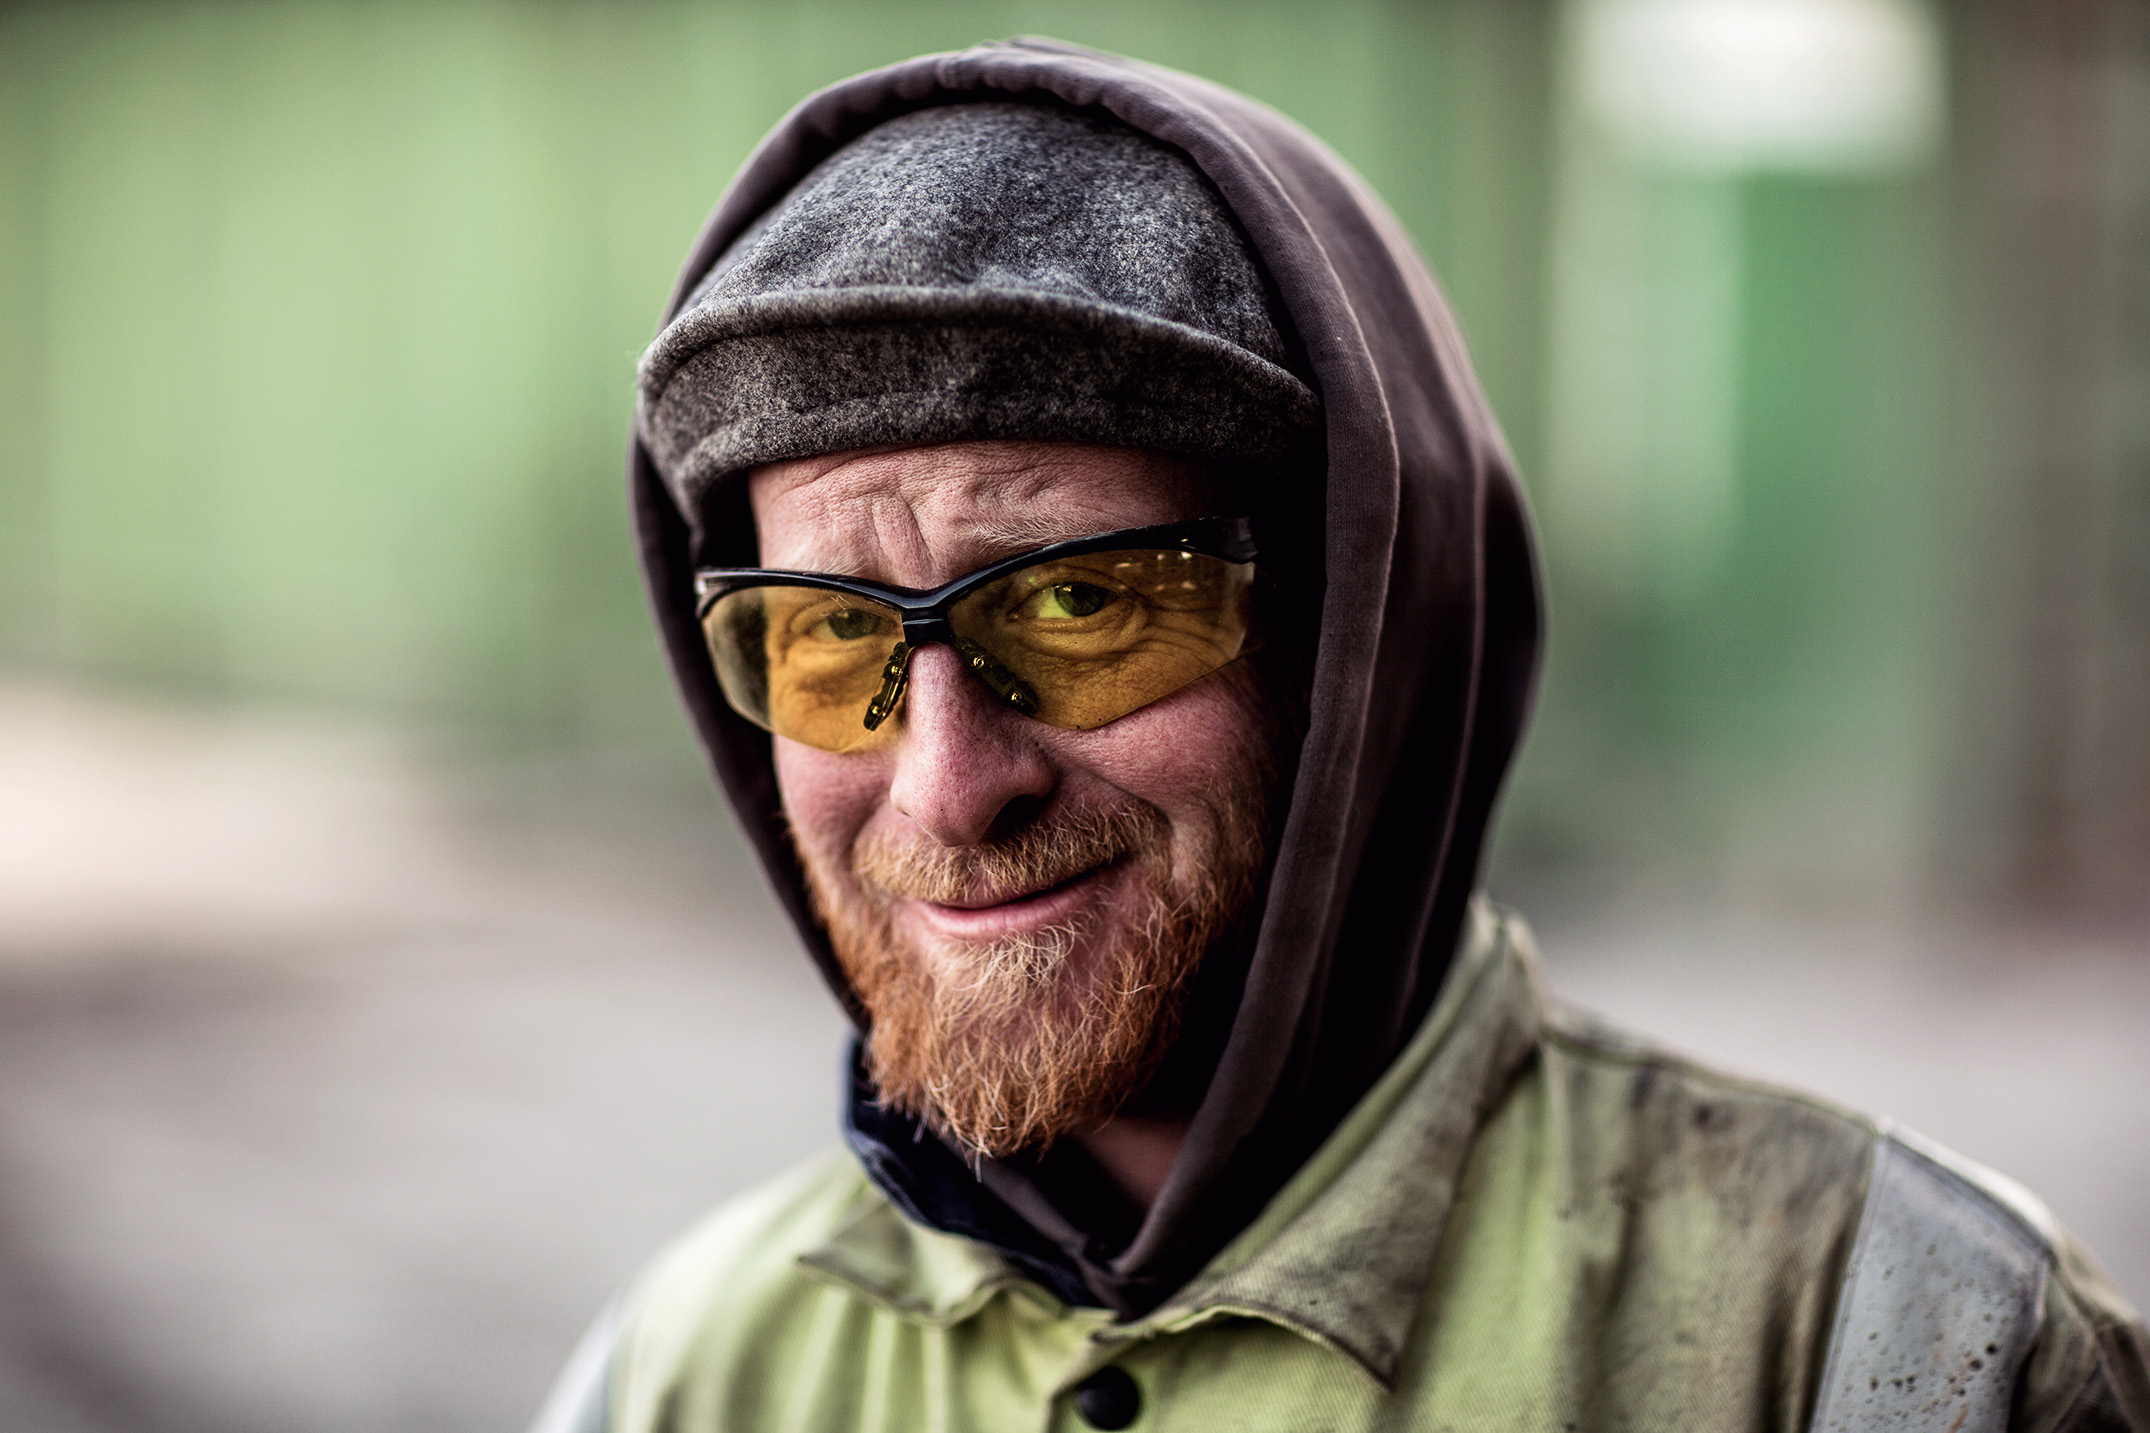 Mike Kane | Landfill worker in Eastern Washington | Seattle documentary, editorial, and commercial photography